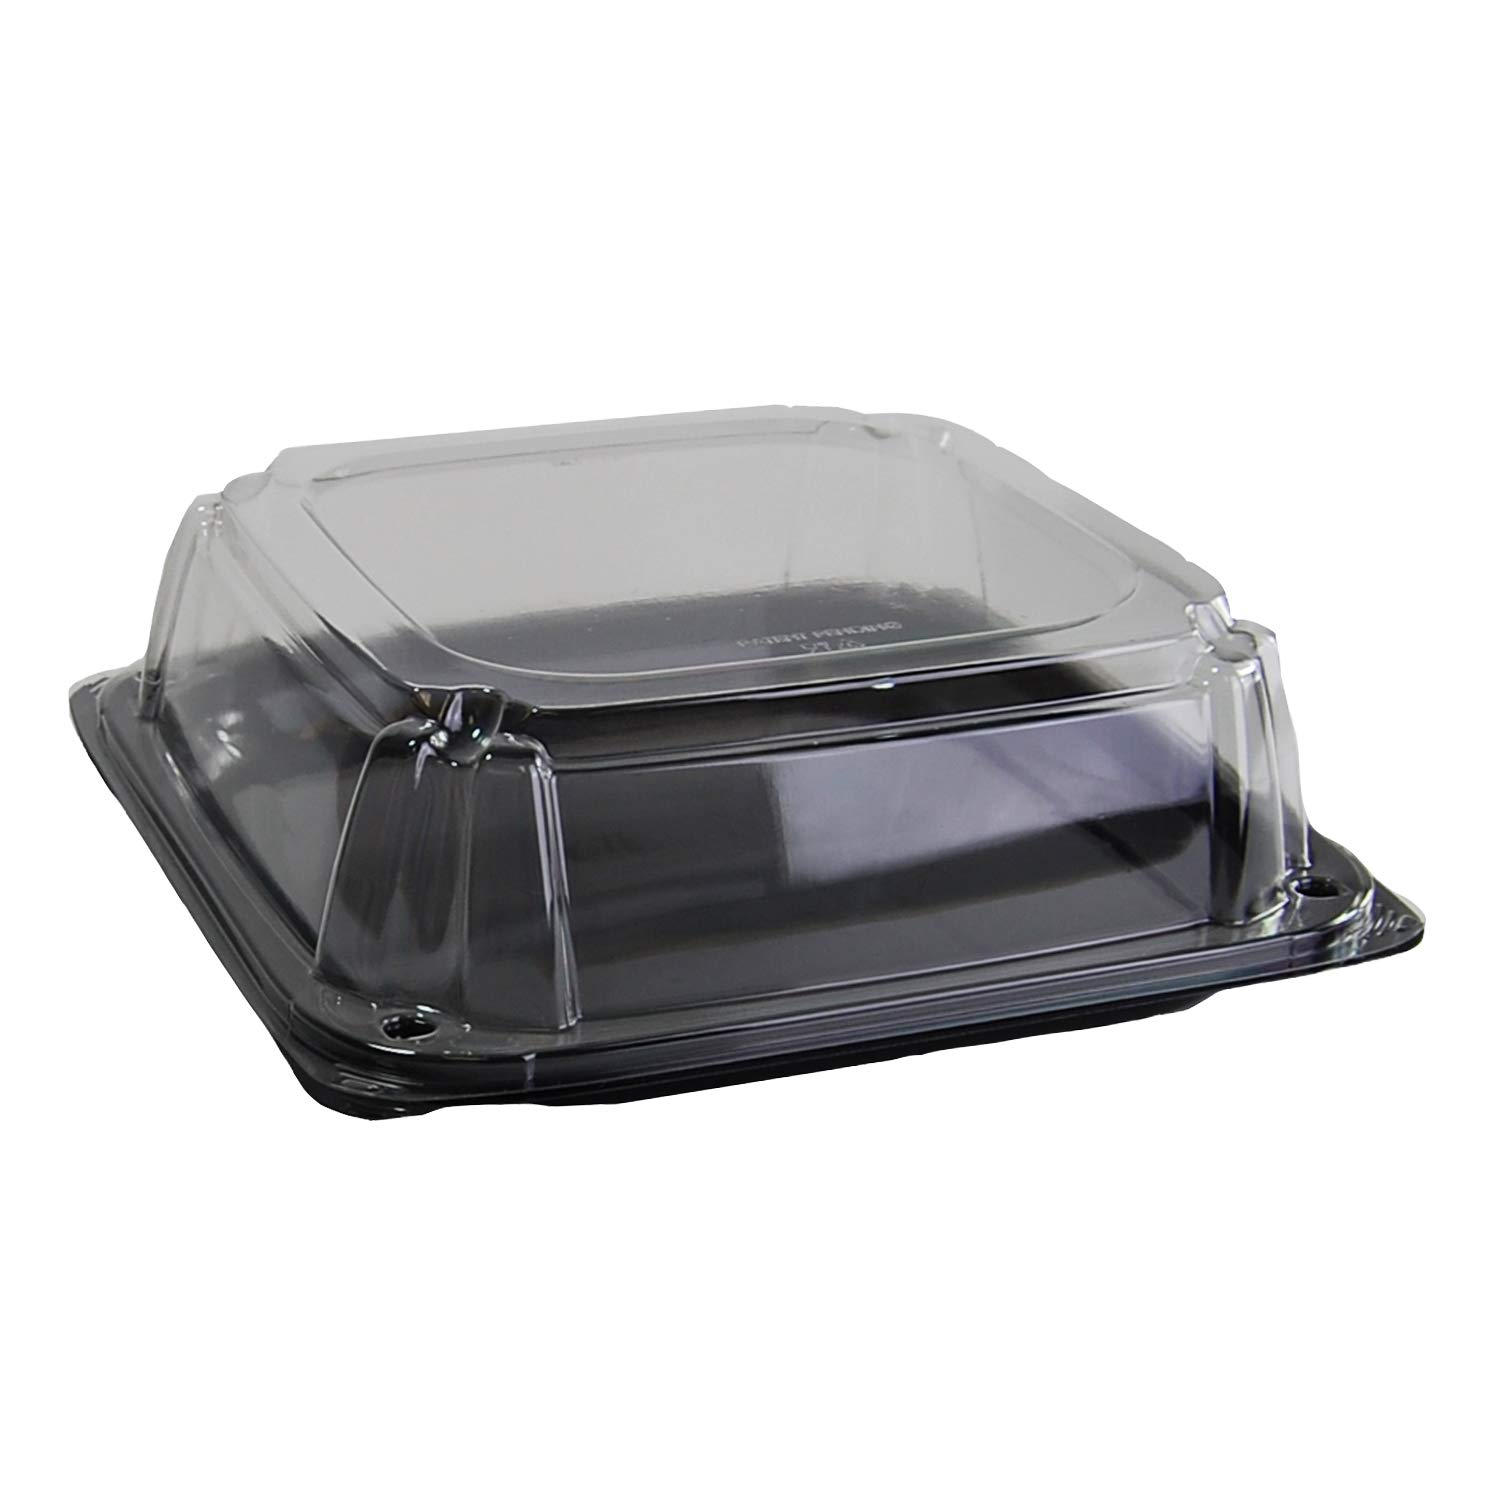 Sabert Black 10.7'' UltraStack Square Platter with Clear 3'' Dome Lid, Durable Plastic, Disposable, 25 Count by Sabert (Image #1)